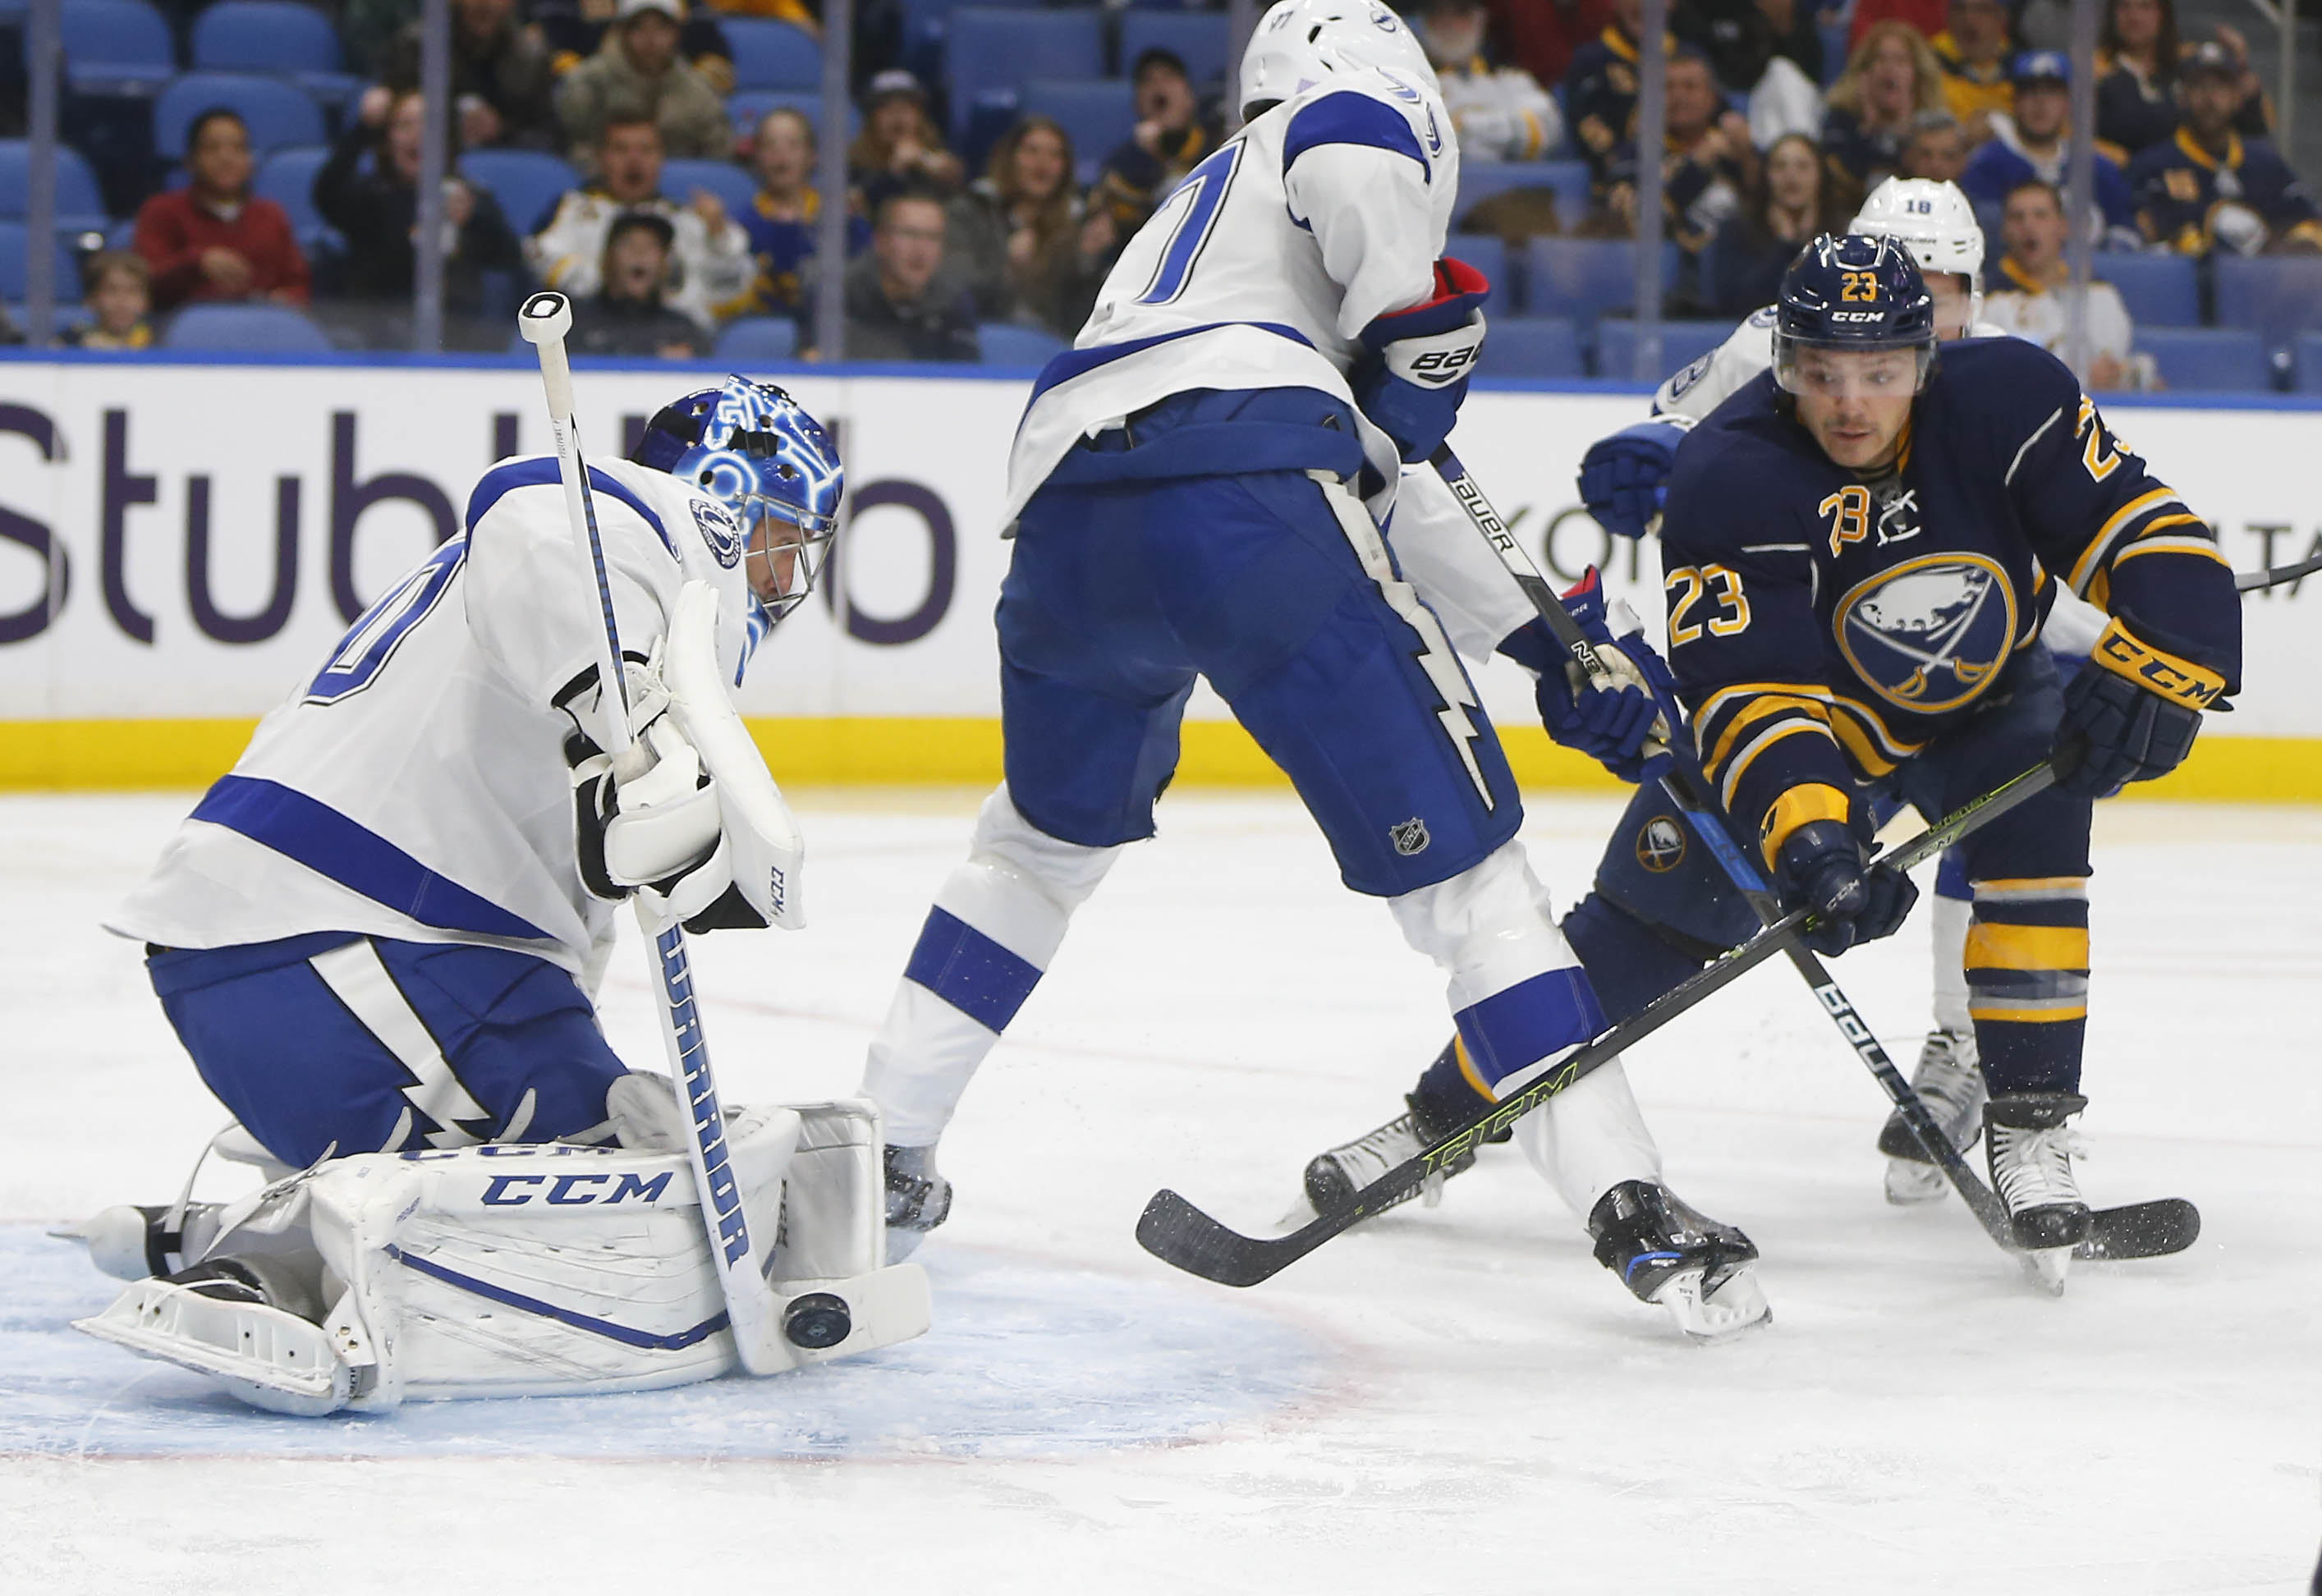 Ben Bishop made 32 saves for Tampa Bay. (Mark Mulville/Buffalo News)